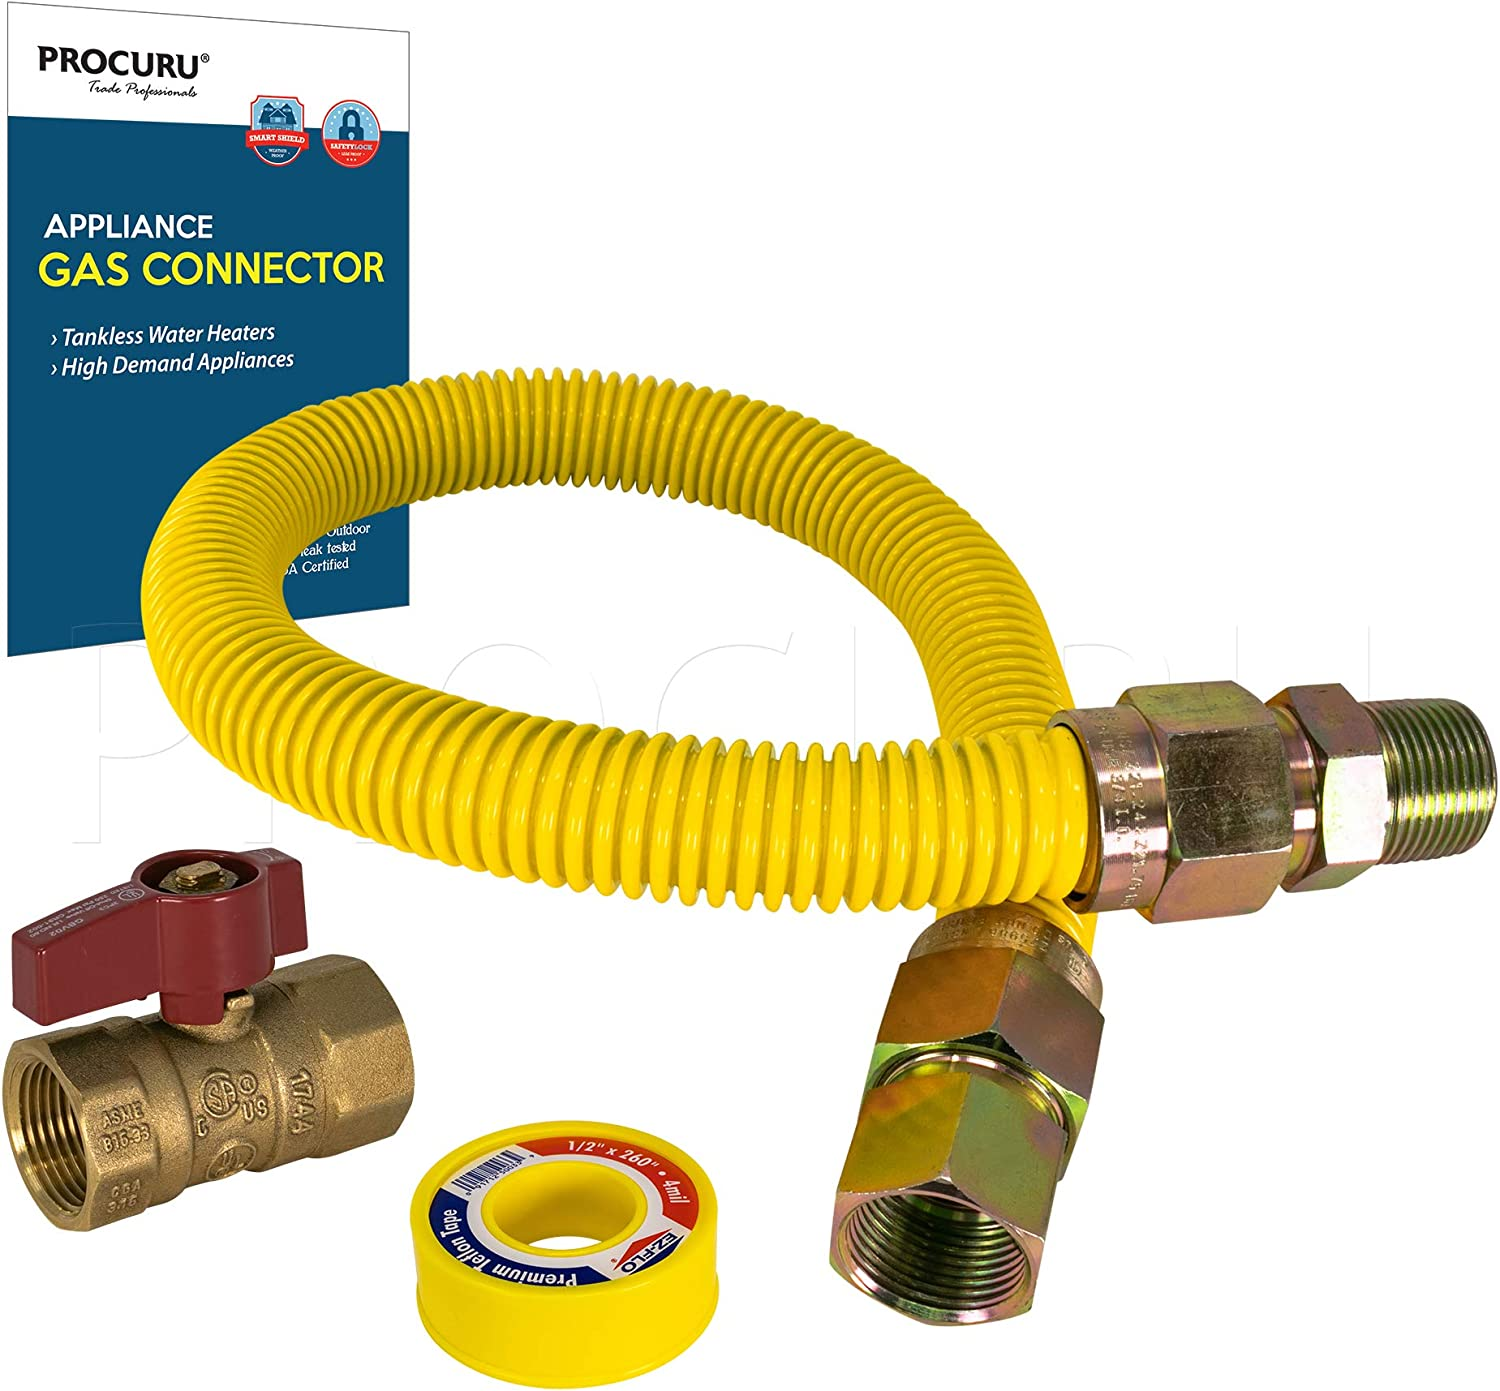 "PROCURU 1"" OD x 24"" Length x 3/4"" MIP x 3/4"" FIP Gas Flex Line Connector Kit with 3/4"" Valve, WeatherProof Max-Flow Stainless Steel with Yellow SafeGuard Coating for Tankless Water Heater"